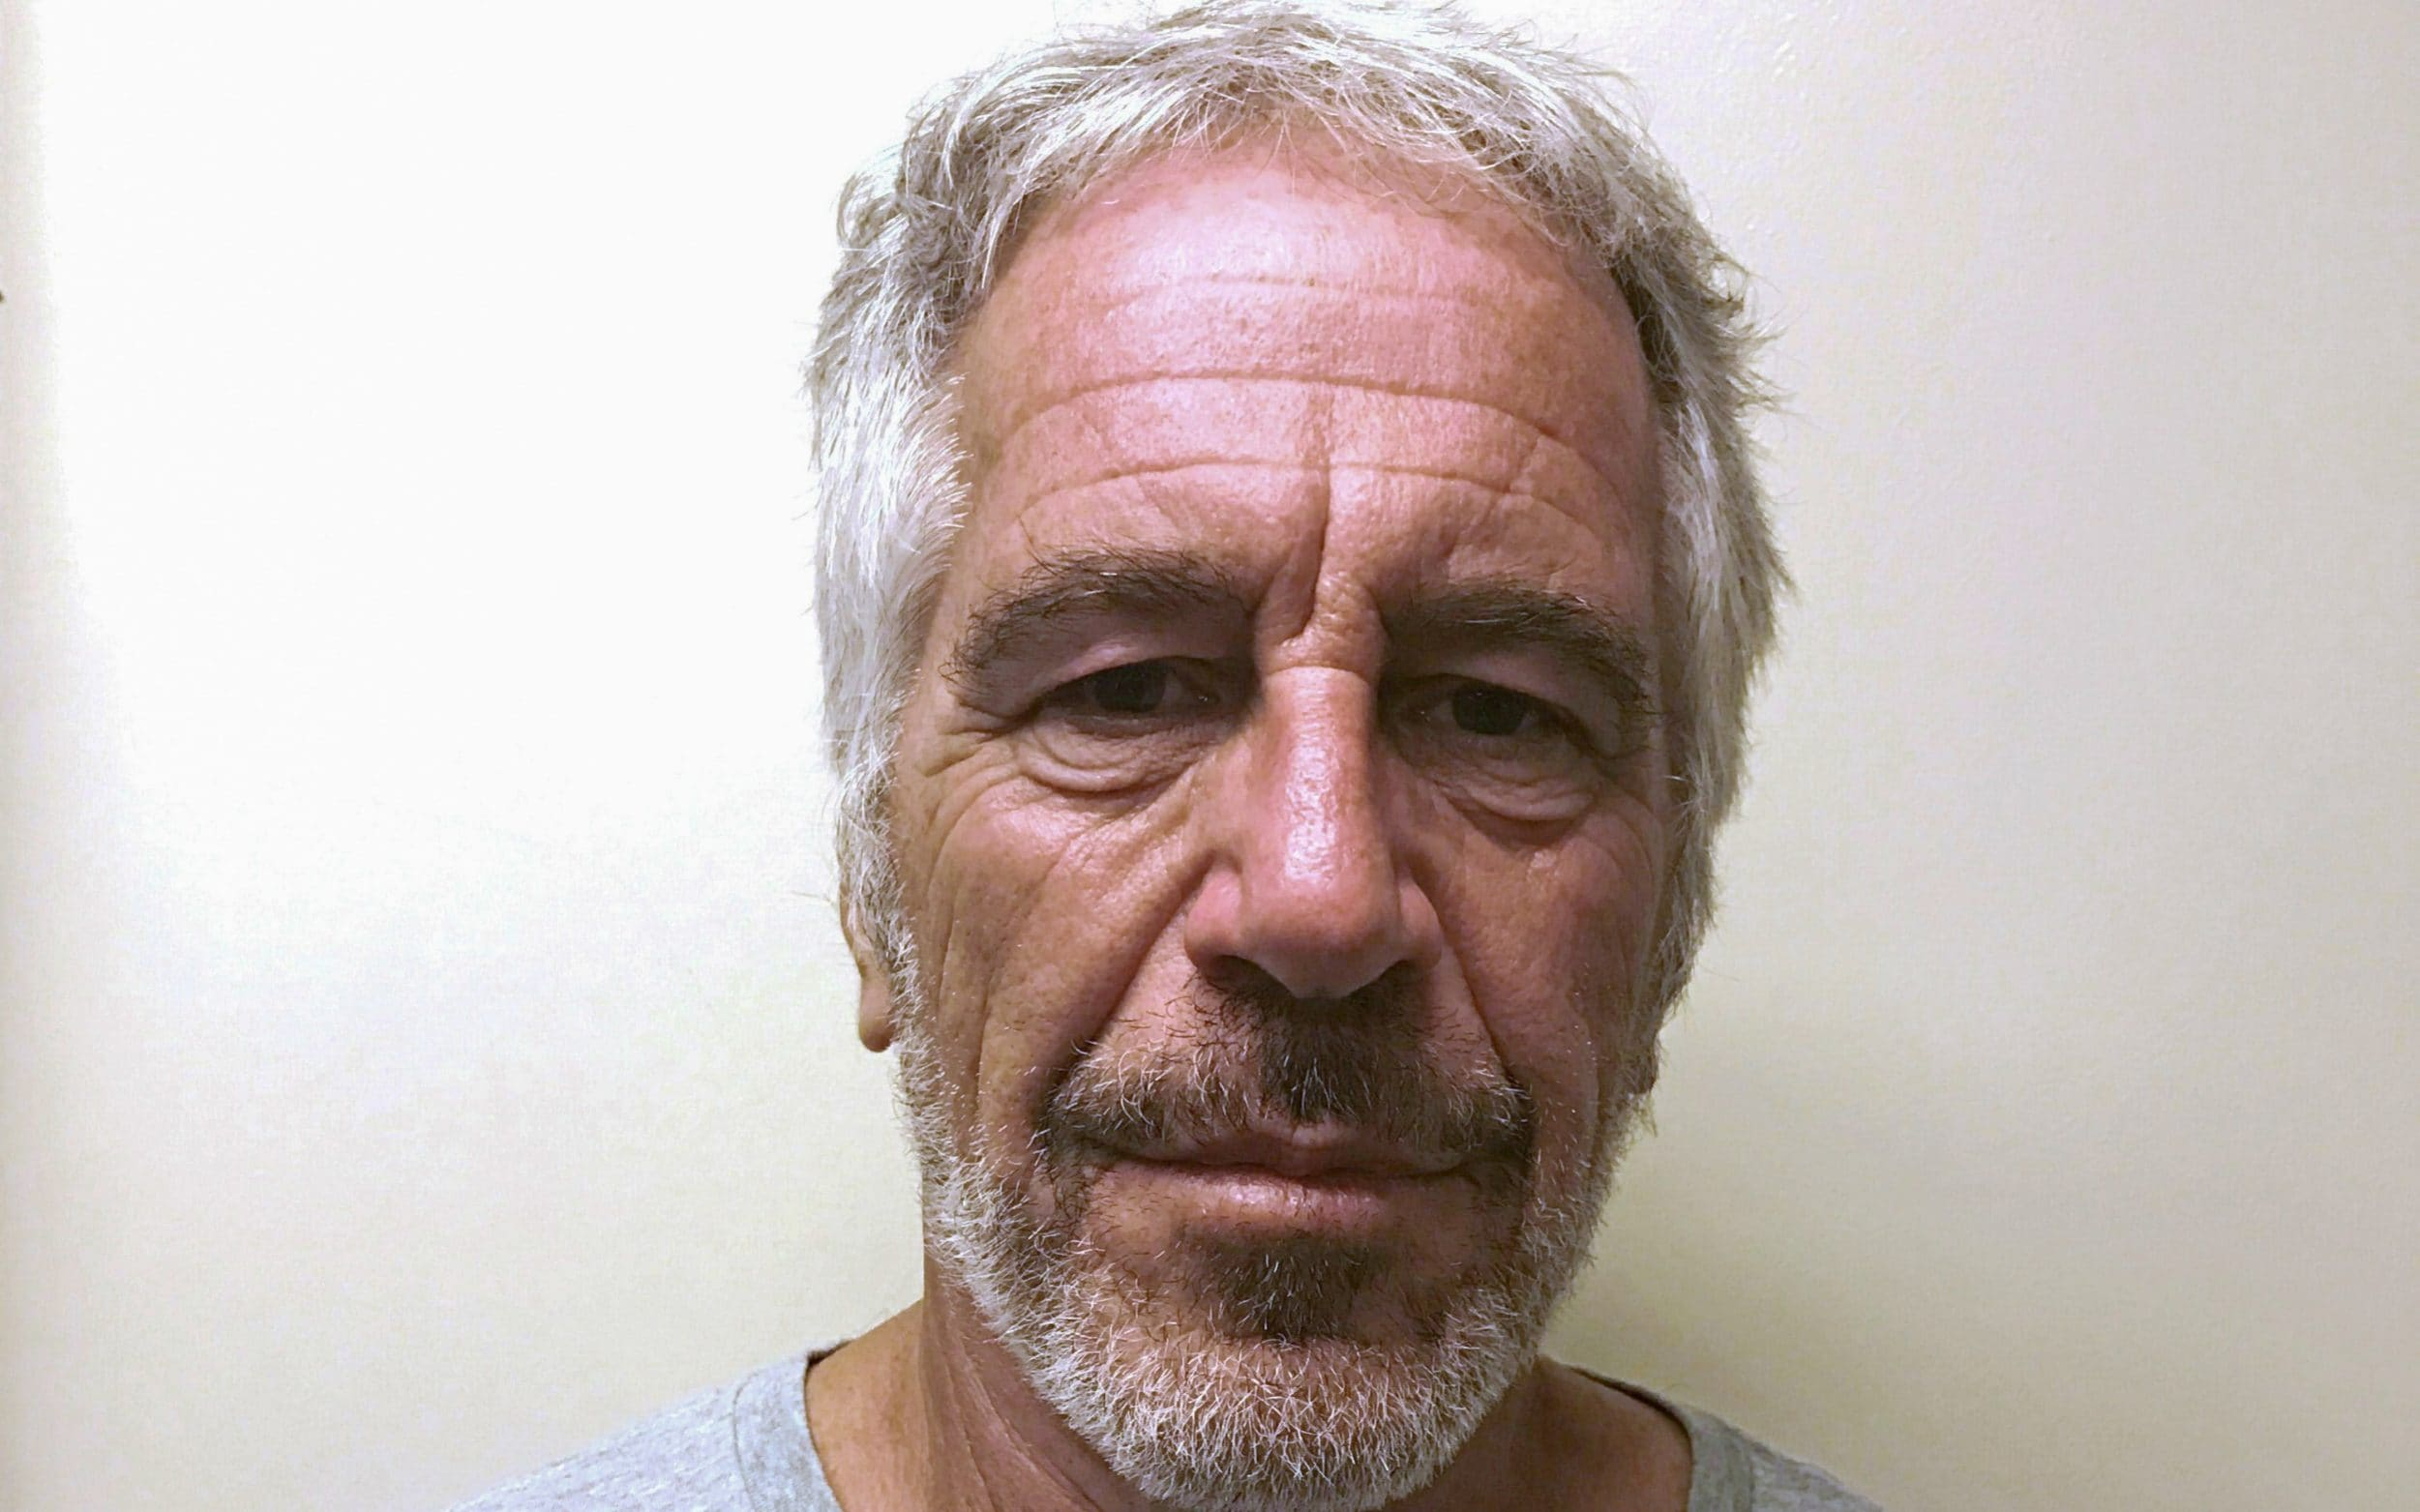 Jeffrey Epstein accused of paying $350,000 to potential witnesses in underage sex case